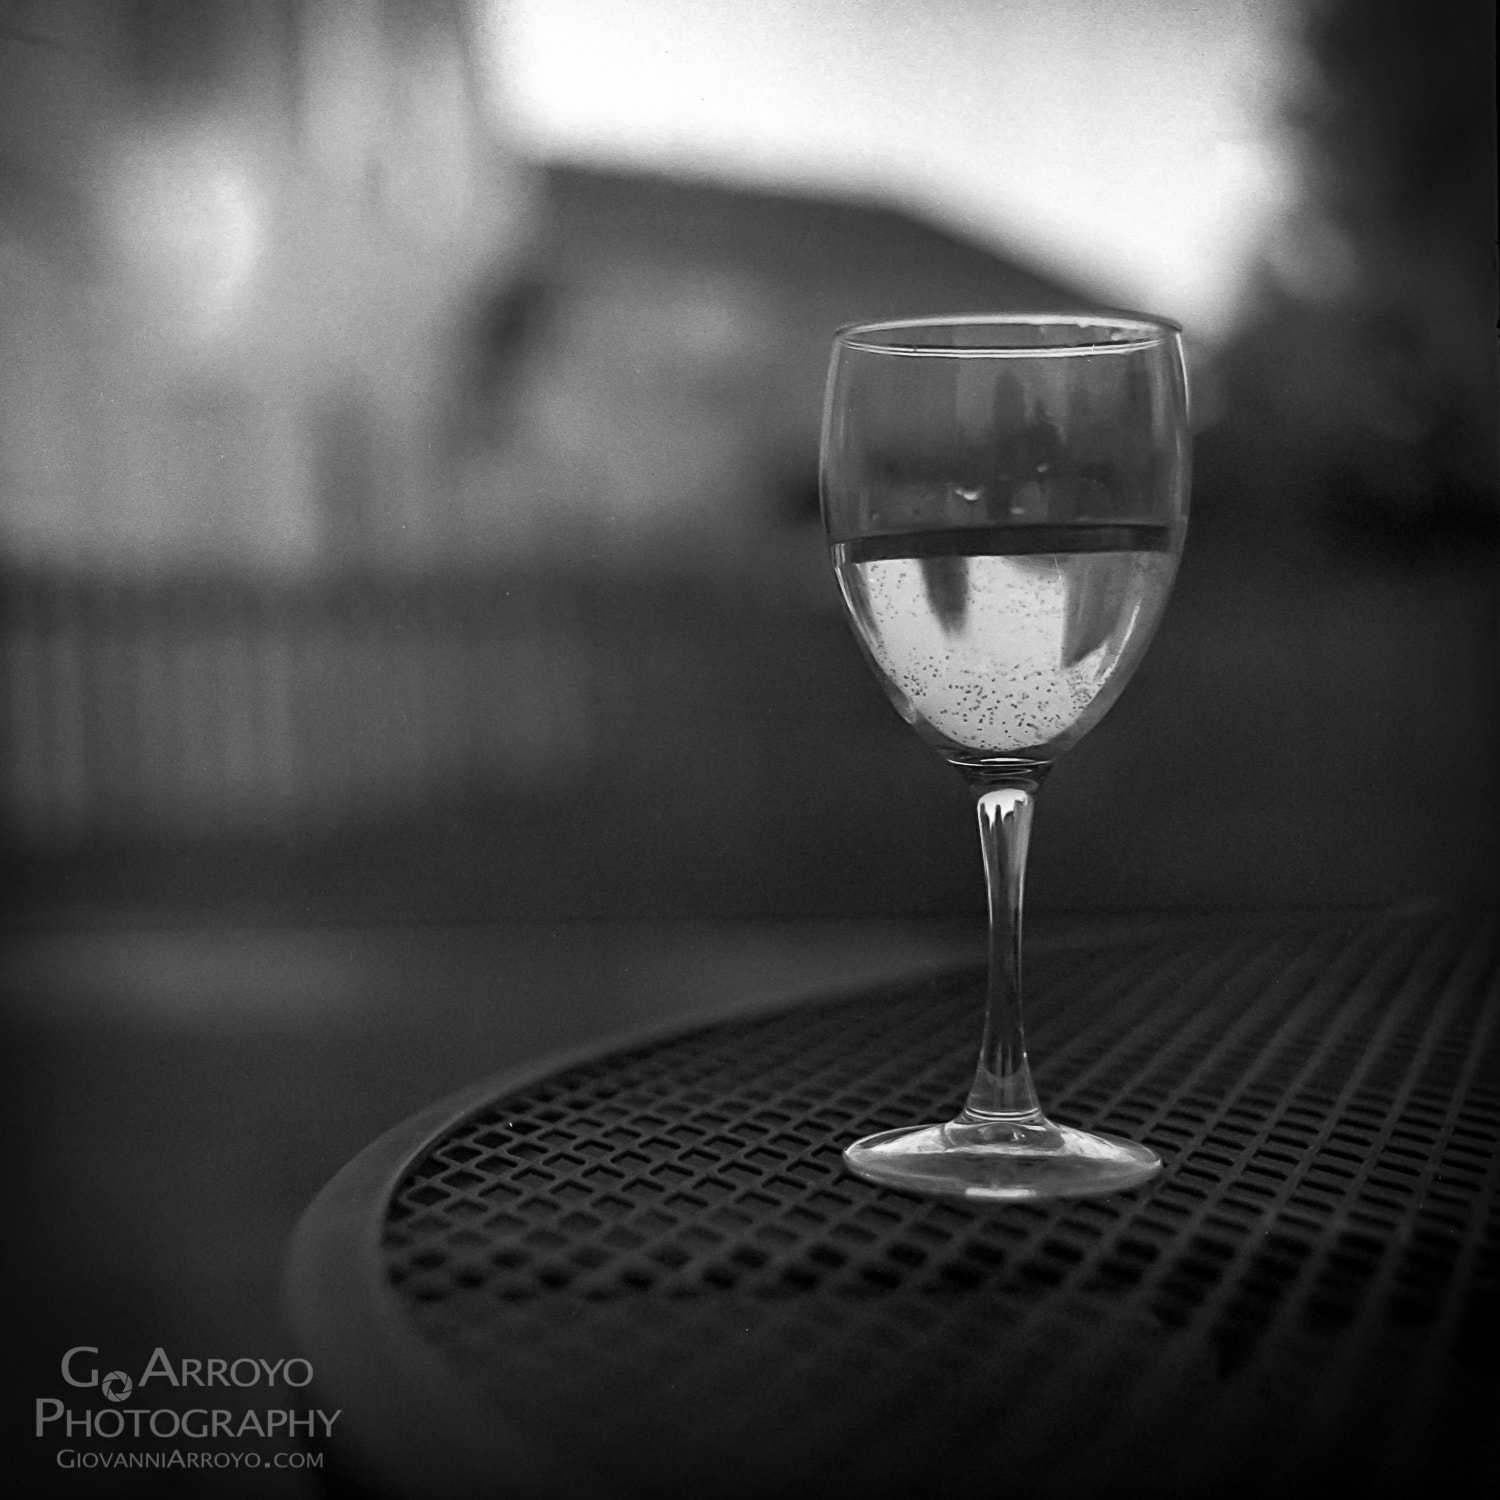 Photograph Wine Glass by Giovanni Arroyo on 500px